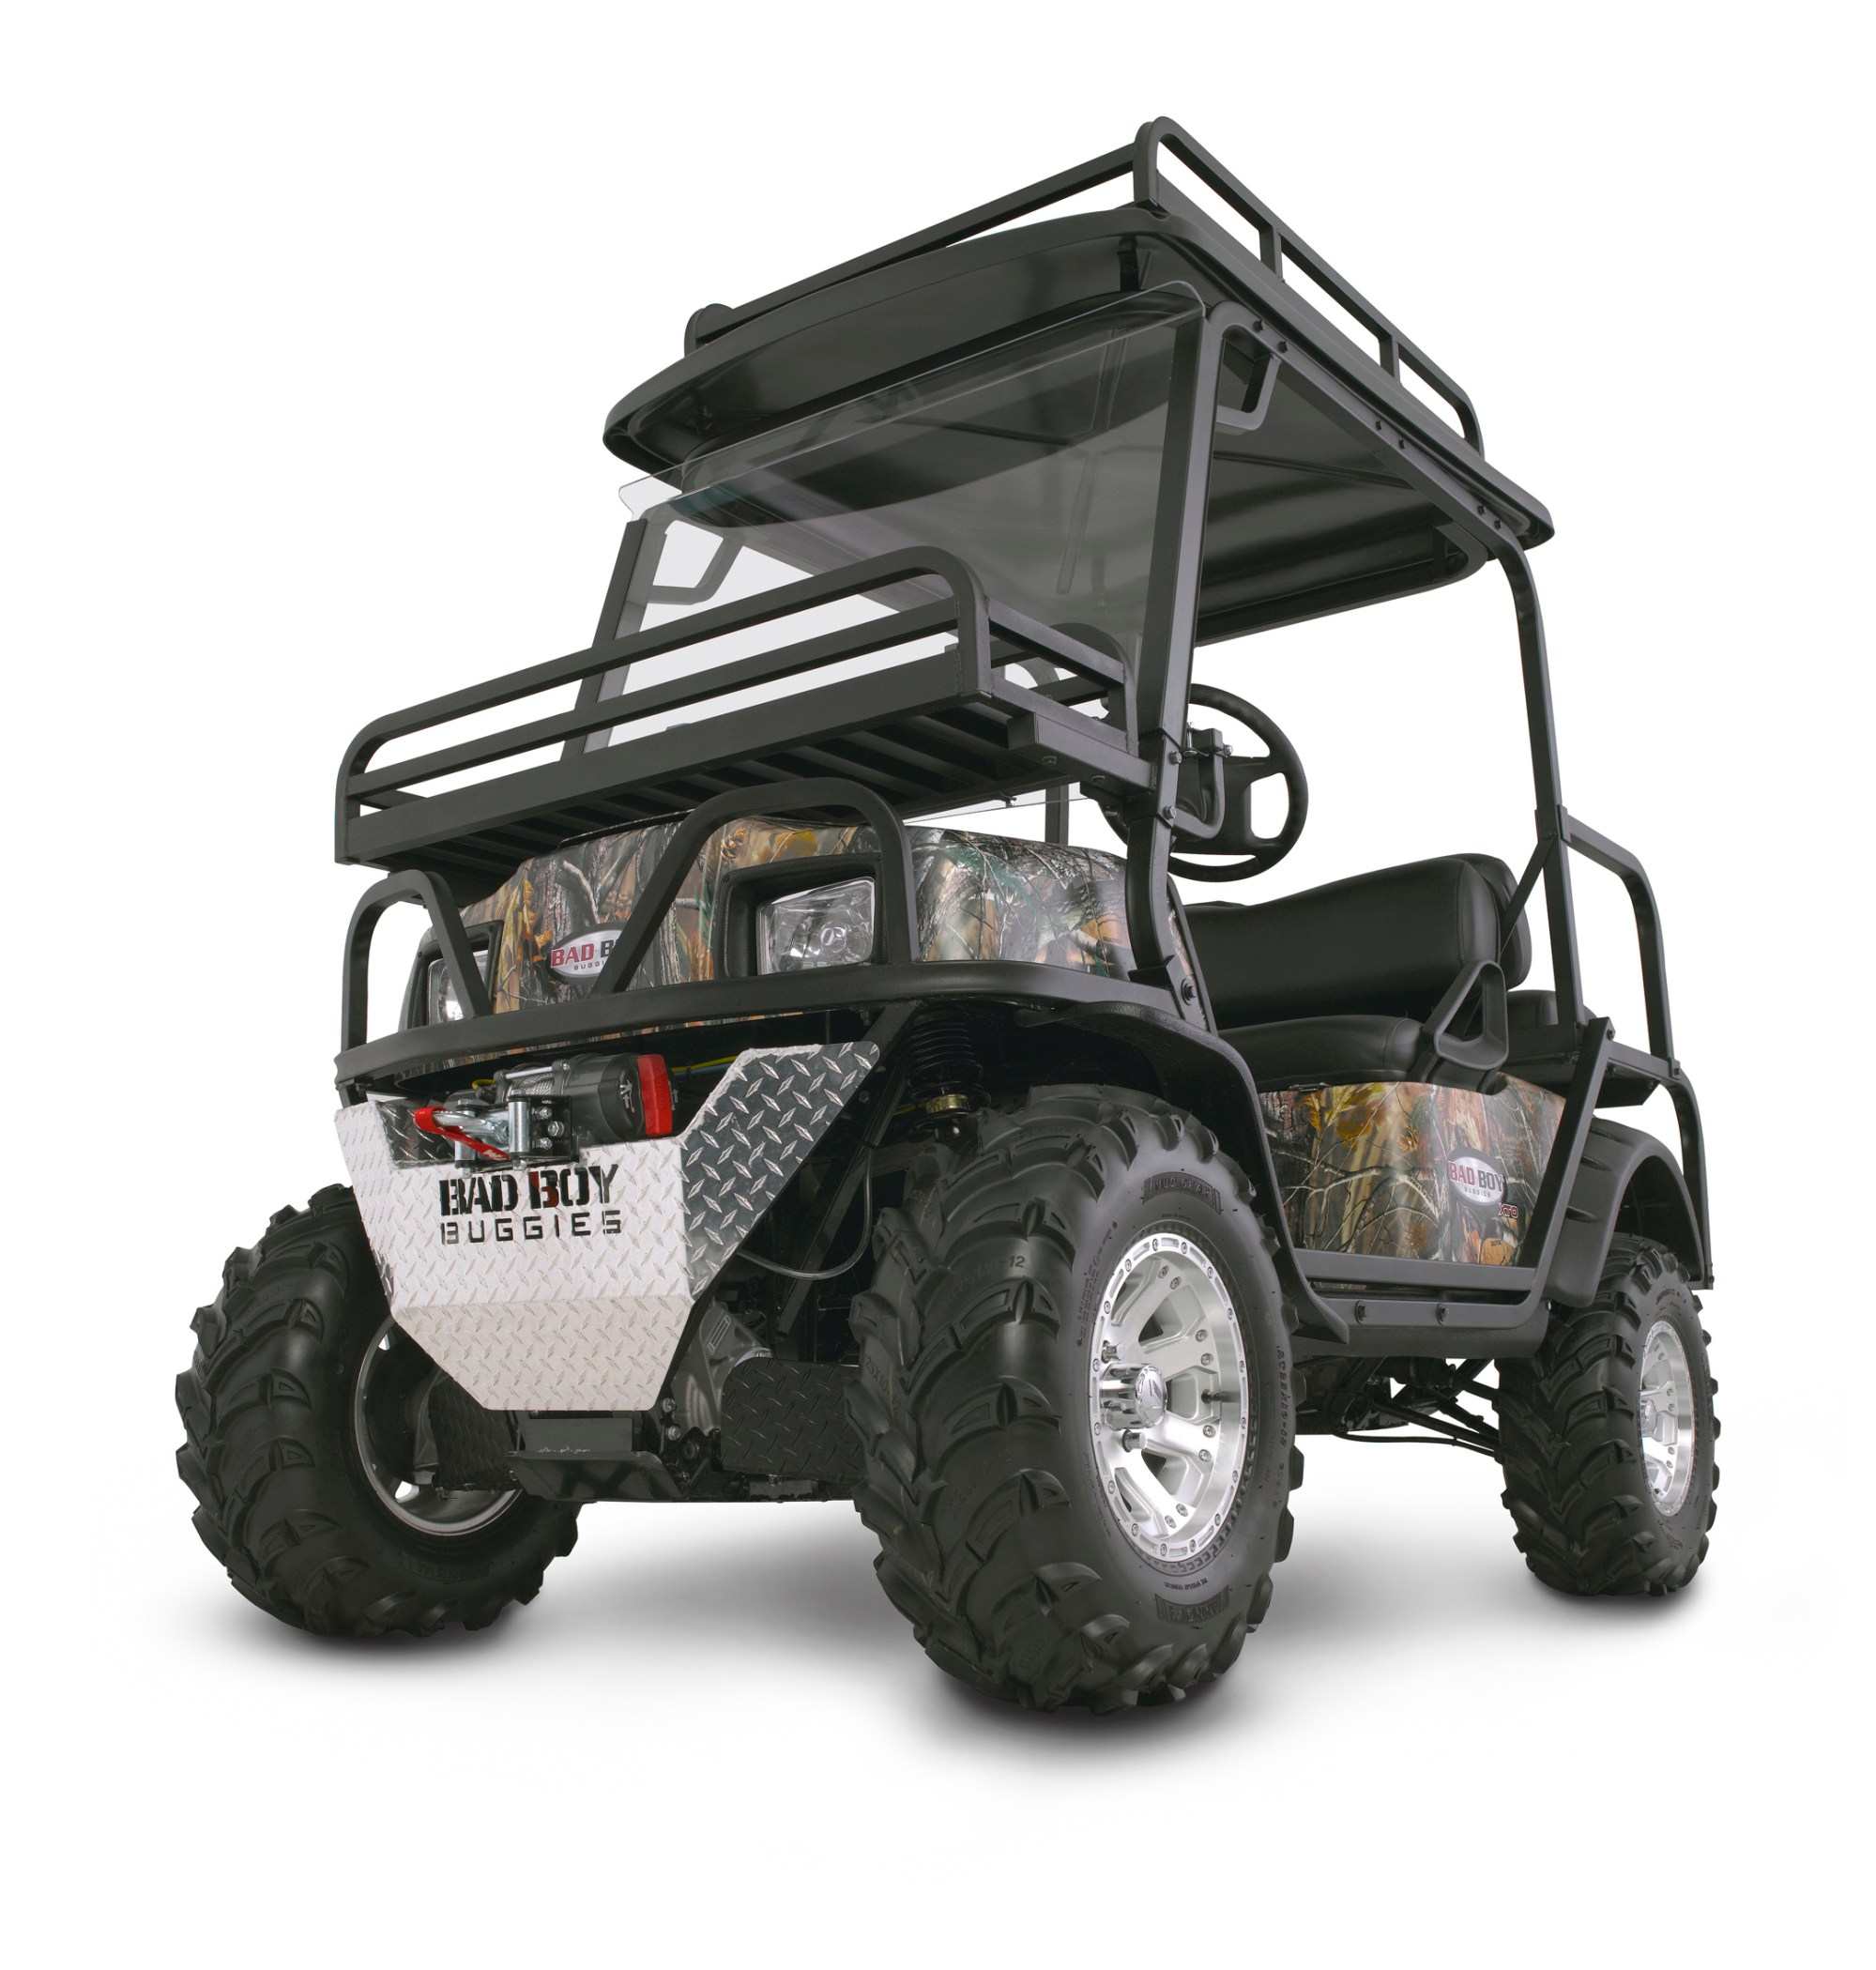 hight resolution of bad boy xto off road utility vehicle